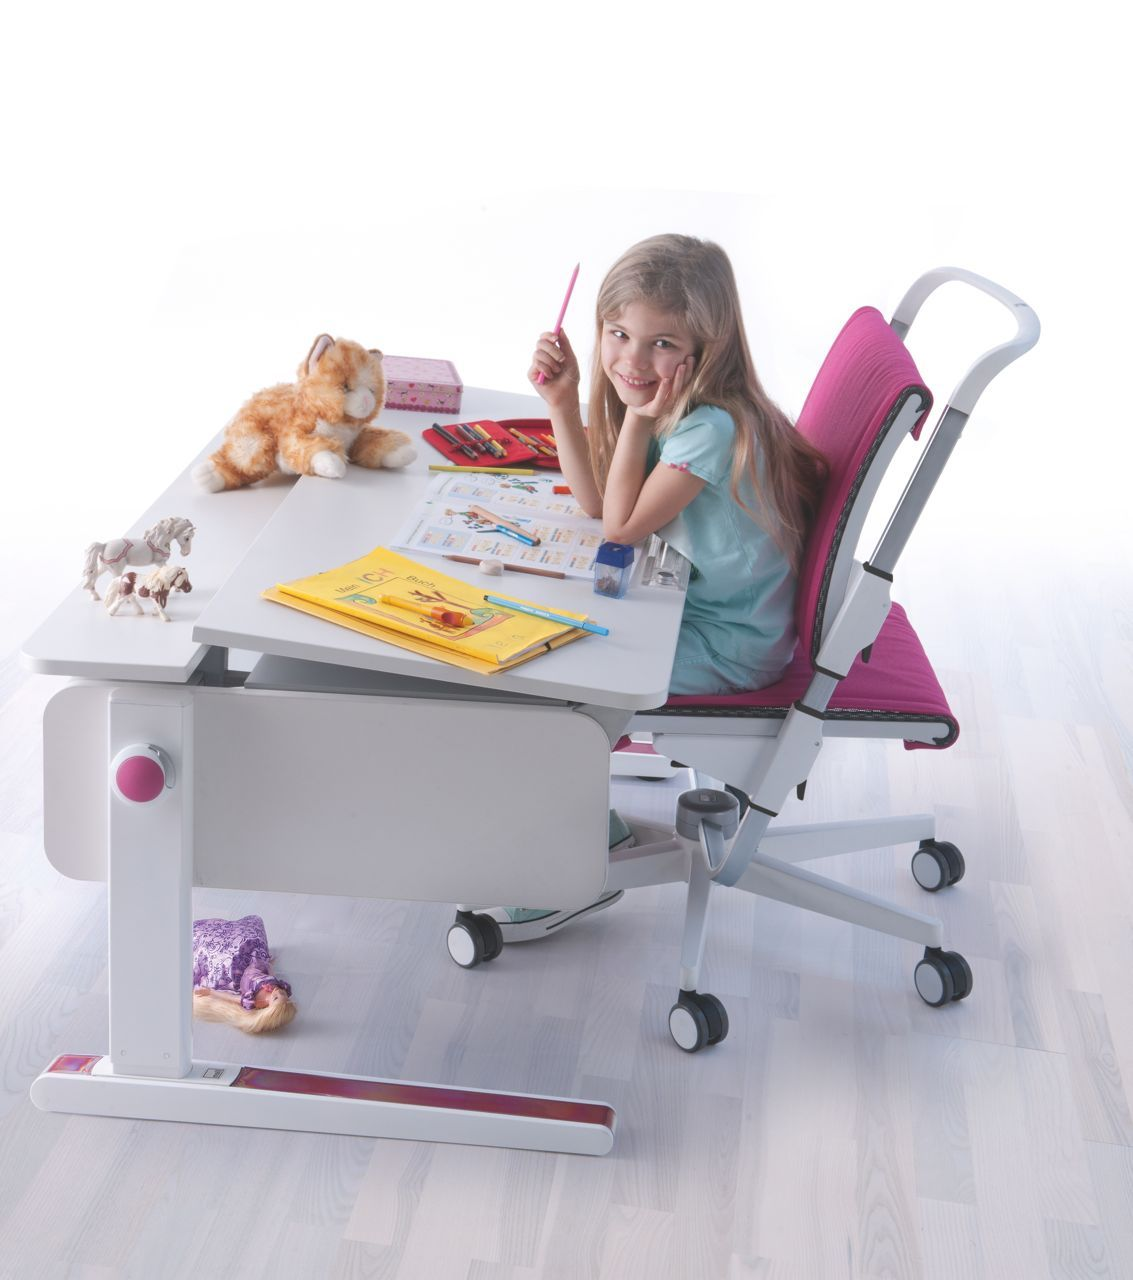 Pin By Ergokid On Ergonomic Kids Desks Chairs Kids Desk Chair Childrens Desk And Chair Kids Study Desk